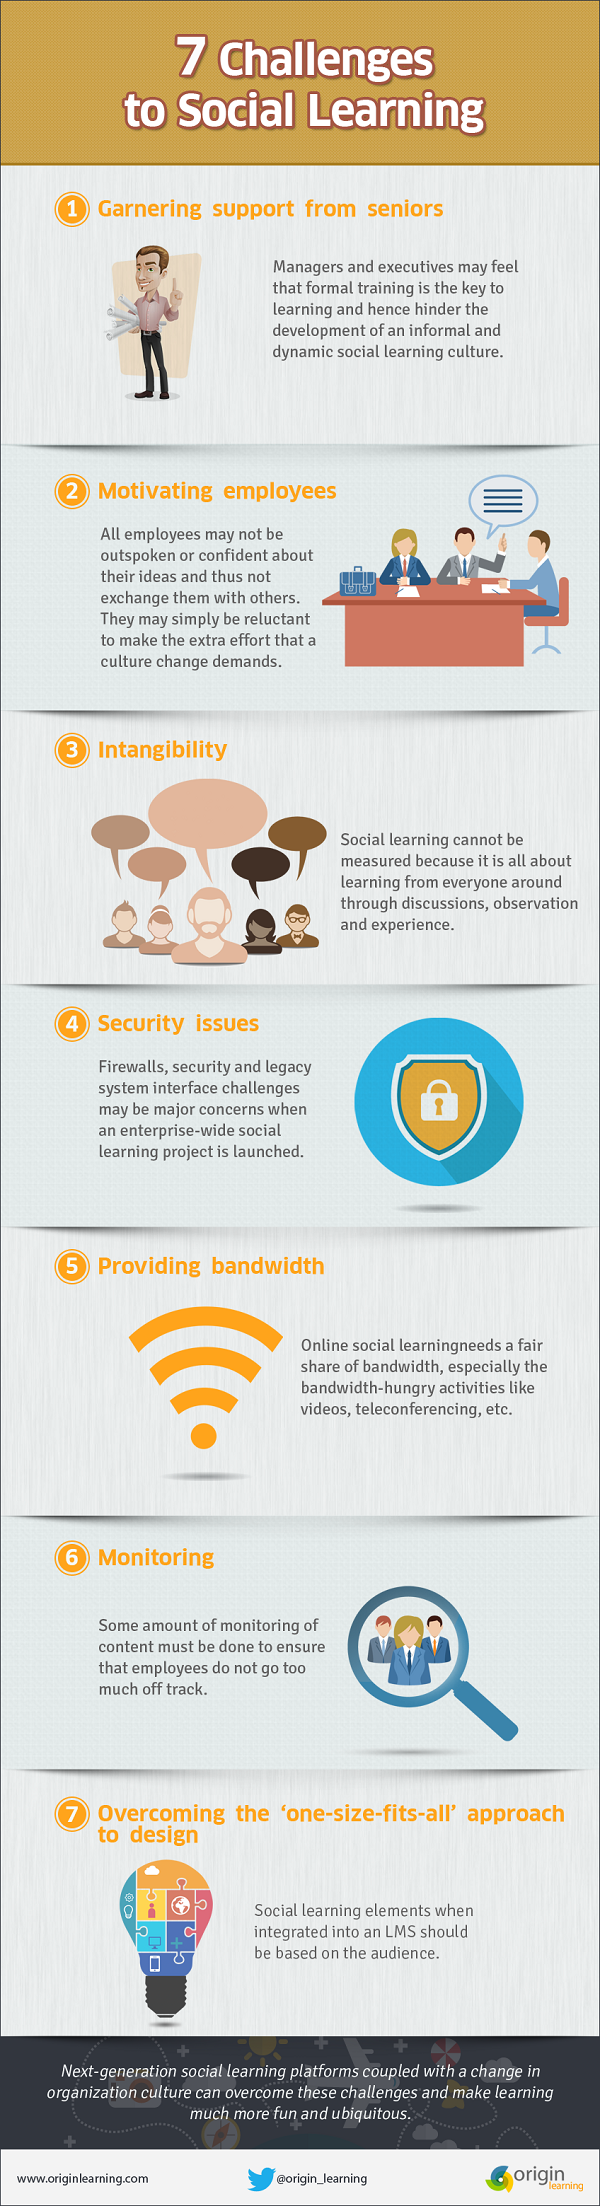 7-challenges-to-Social-Learning.png